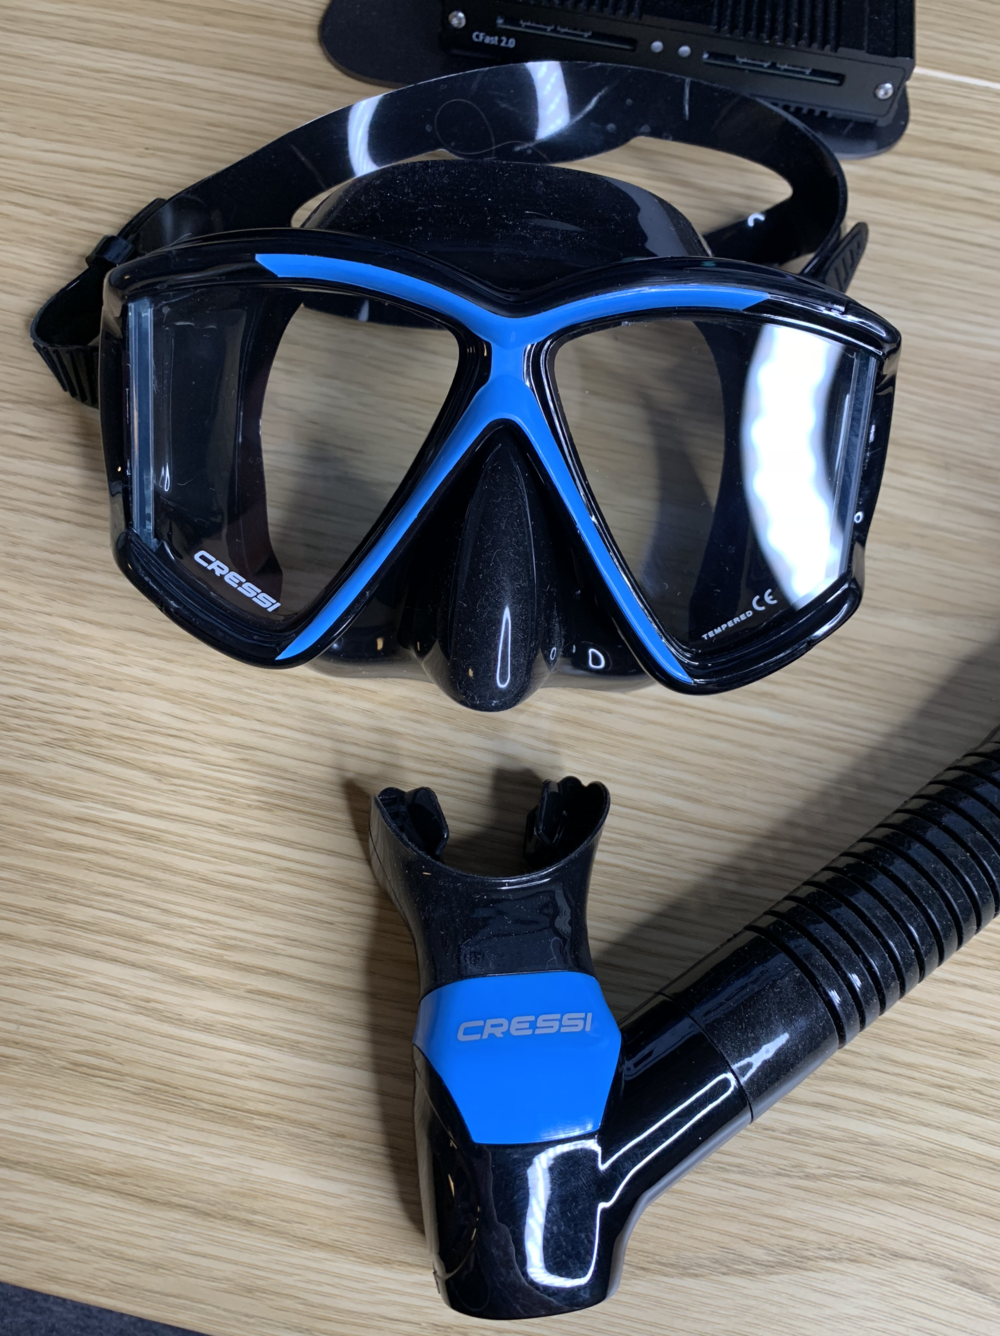 Photo of my actual snorkel that just got delivered by amazon.